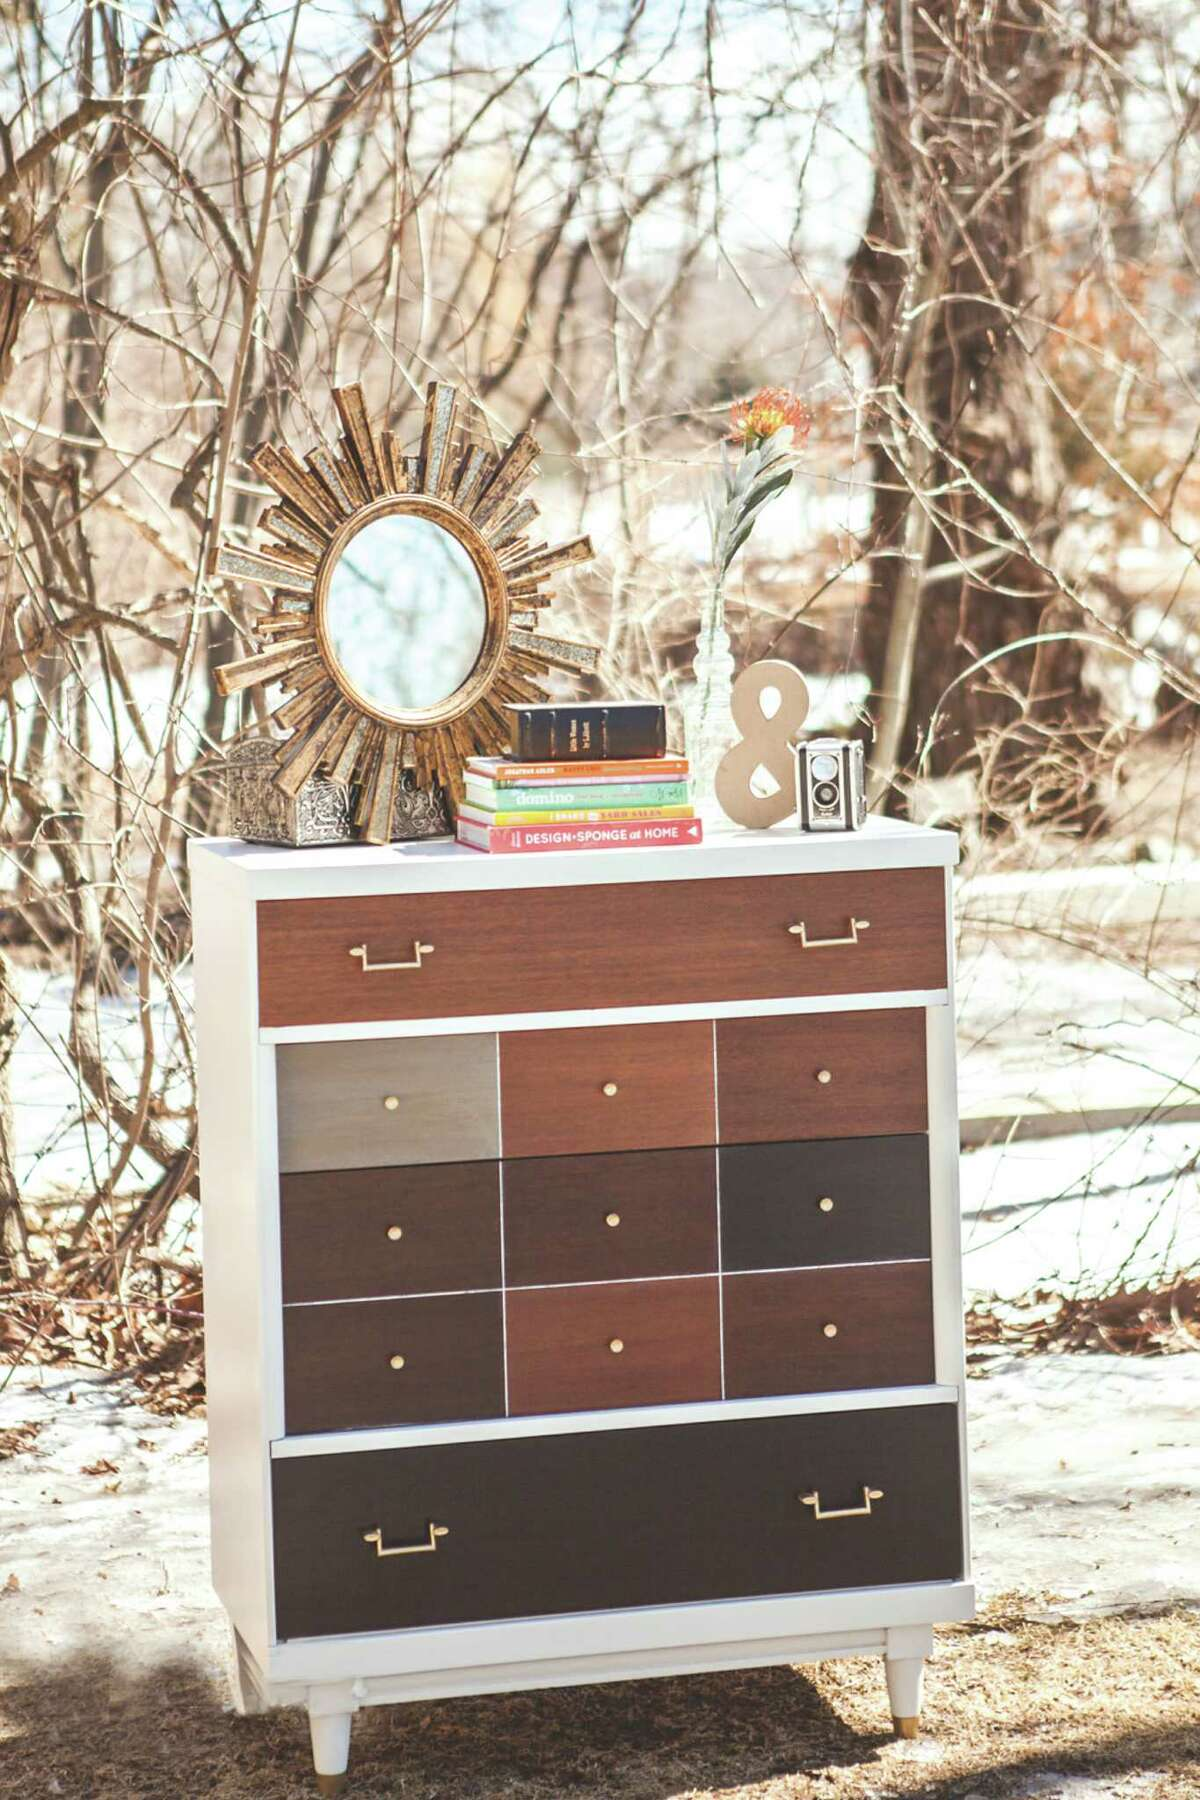 West Elm inspired patchwork dresser?... - Made by Sarah Trop of FunCycled (funcycled.com)